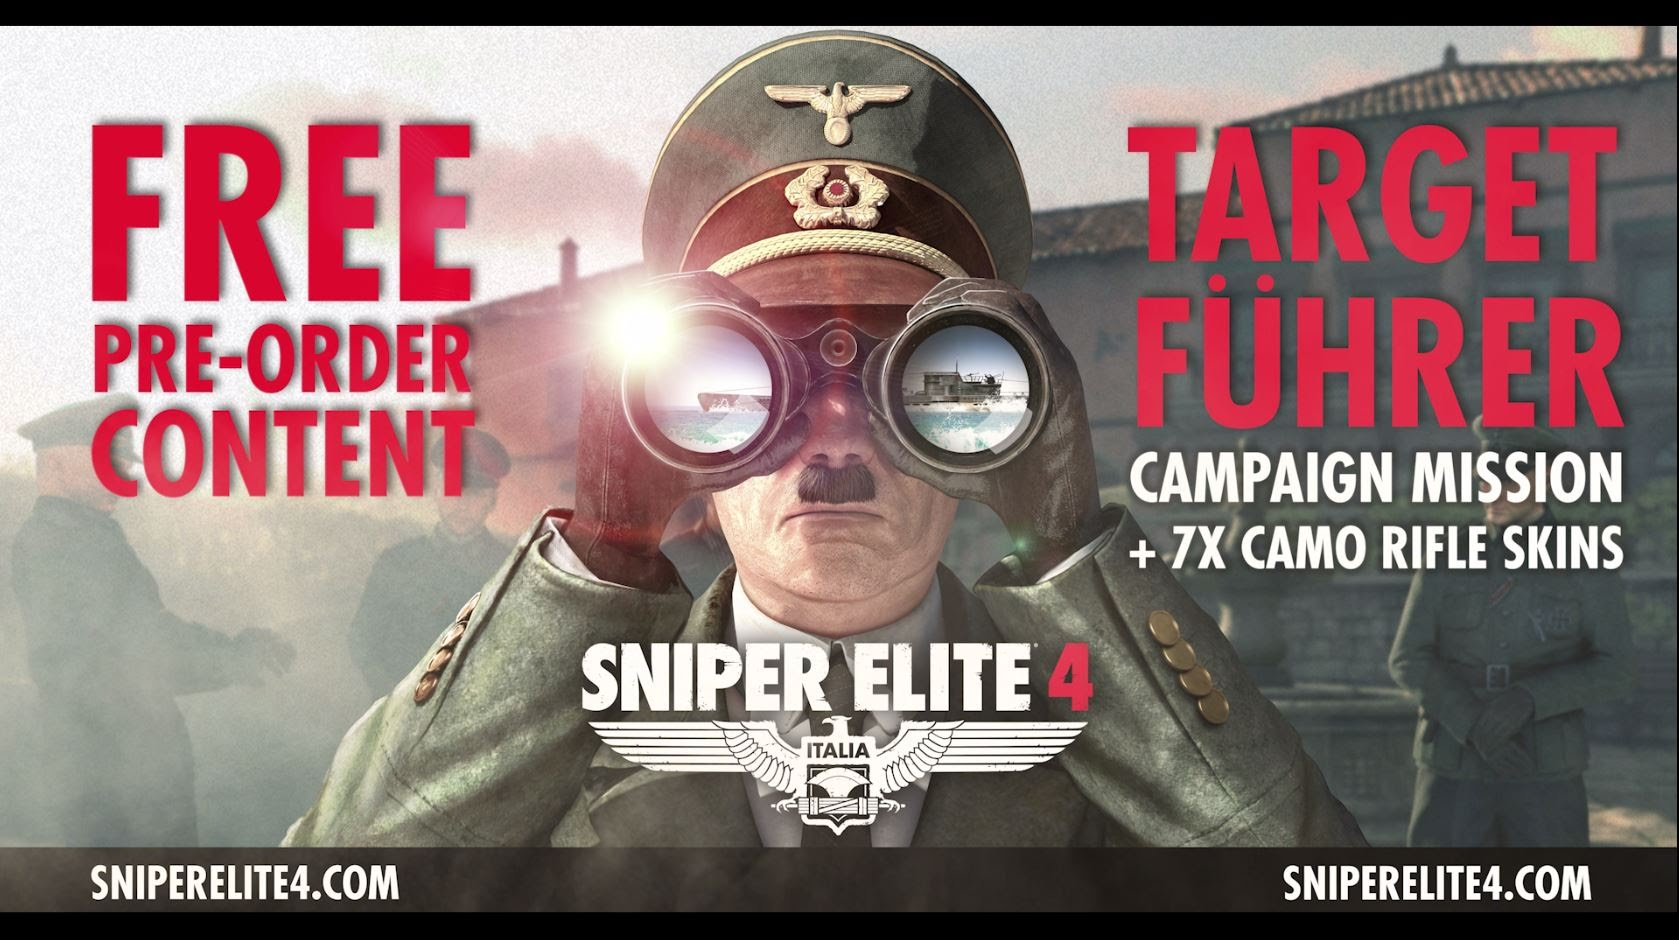 Sniper Elite 4 | First Gameplay Trailer & Target Führer Teaser